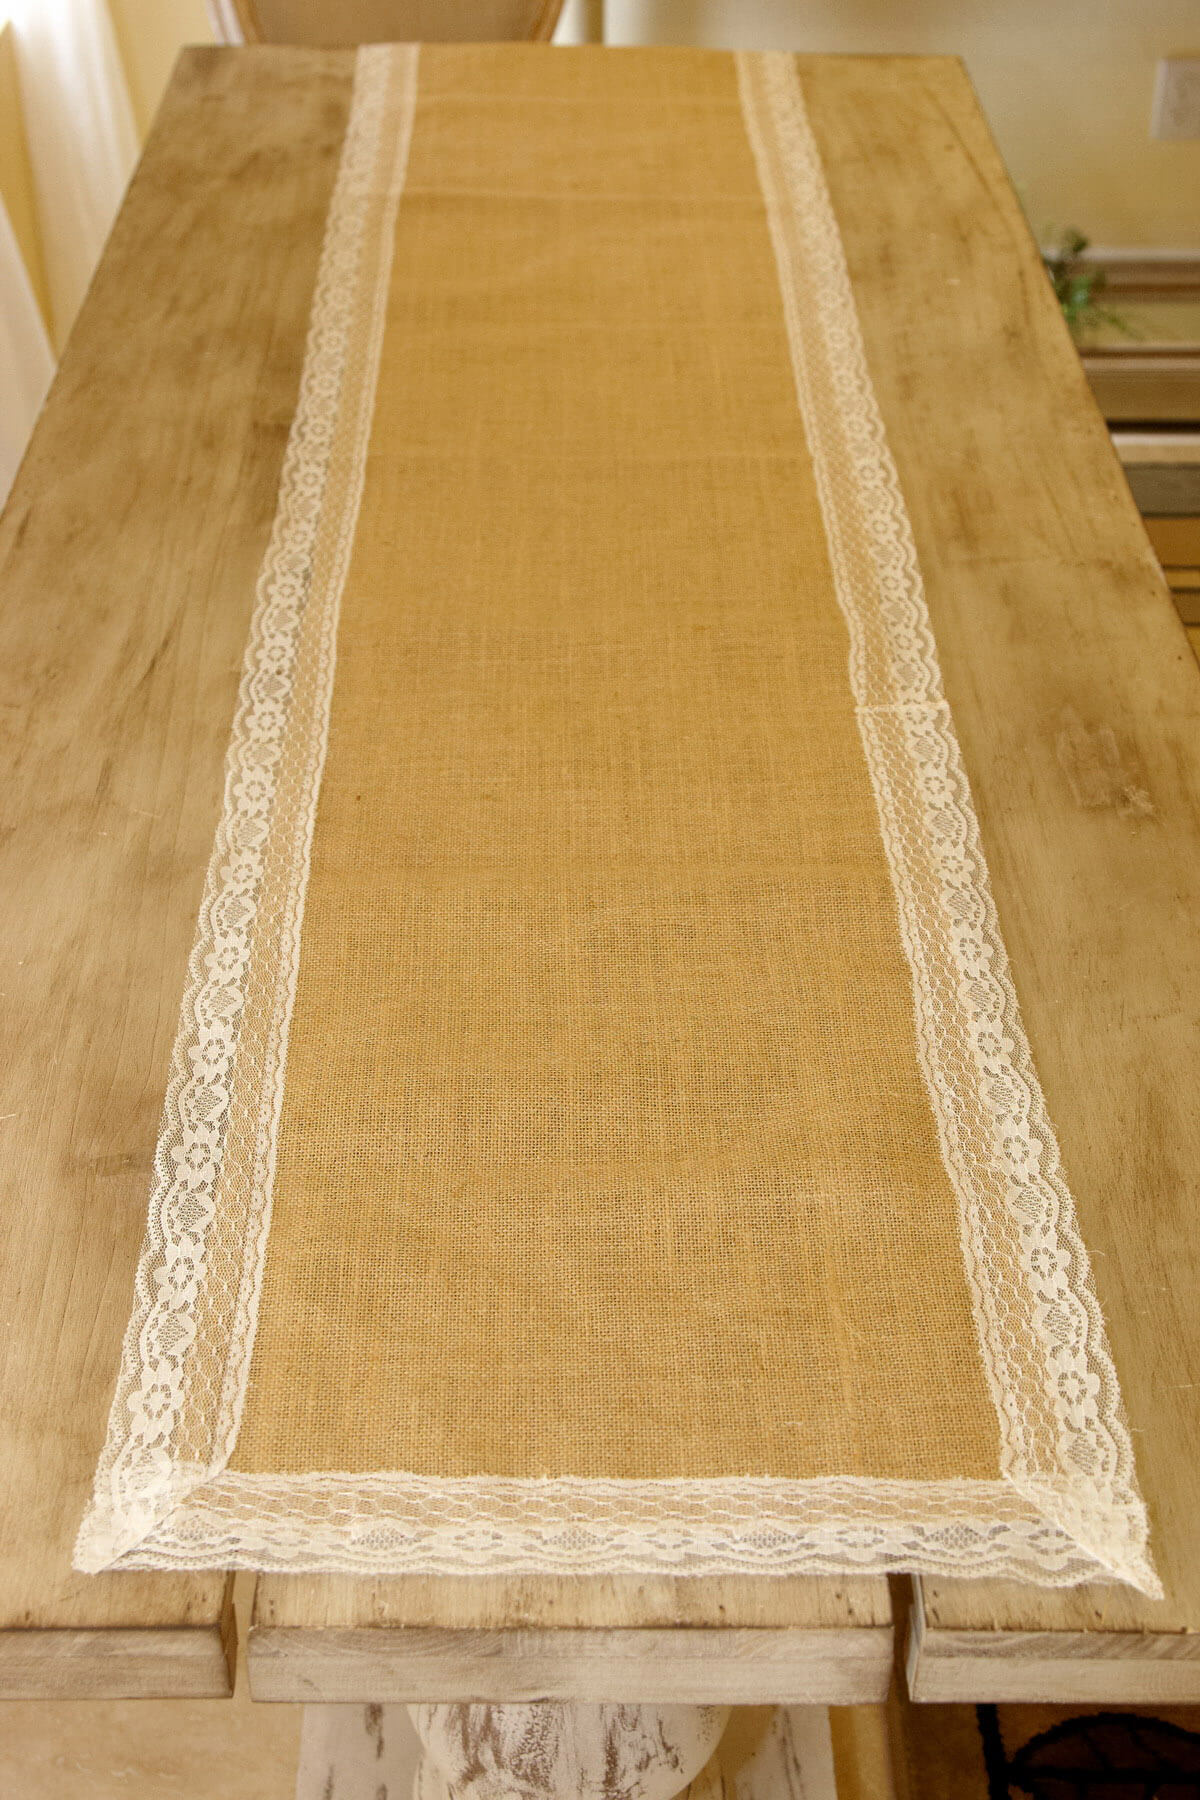 shabby chic chair yellow fabric desk burlap & lace table runner 16 x 74in